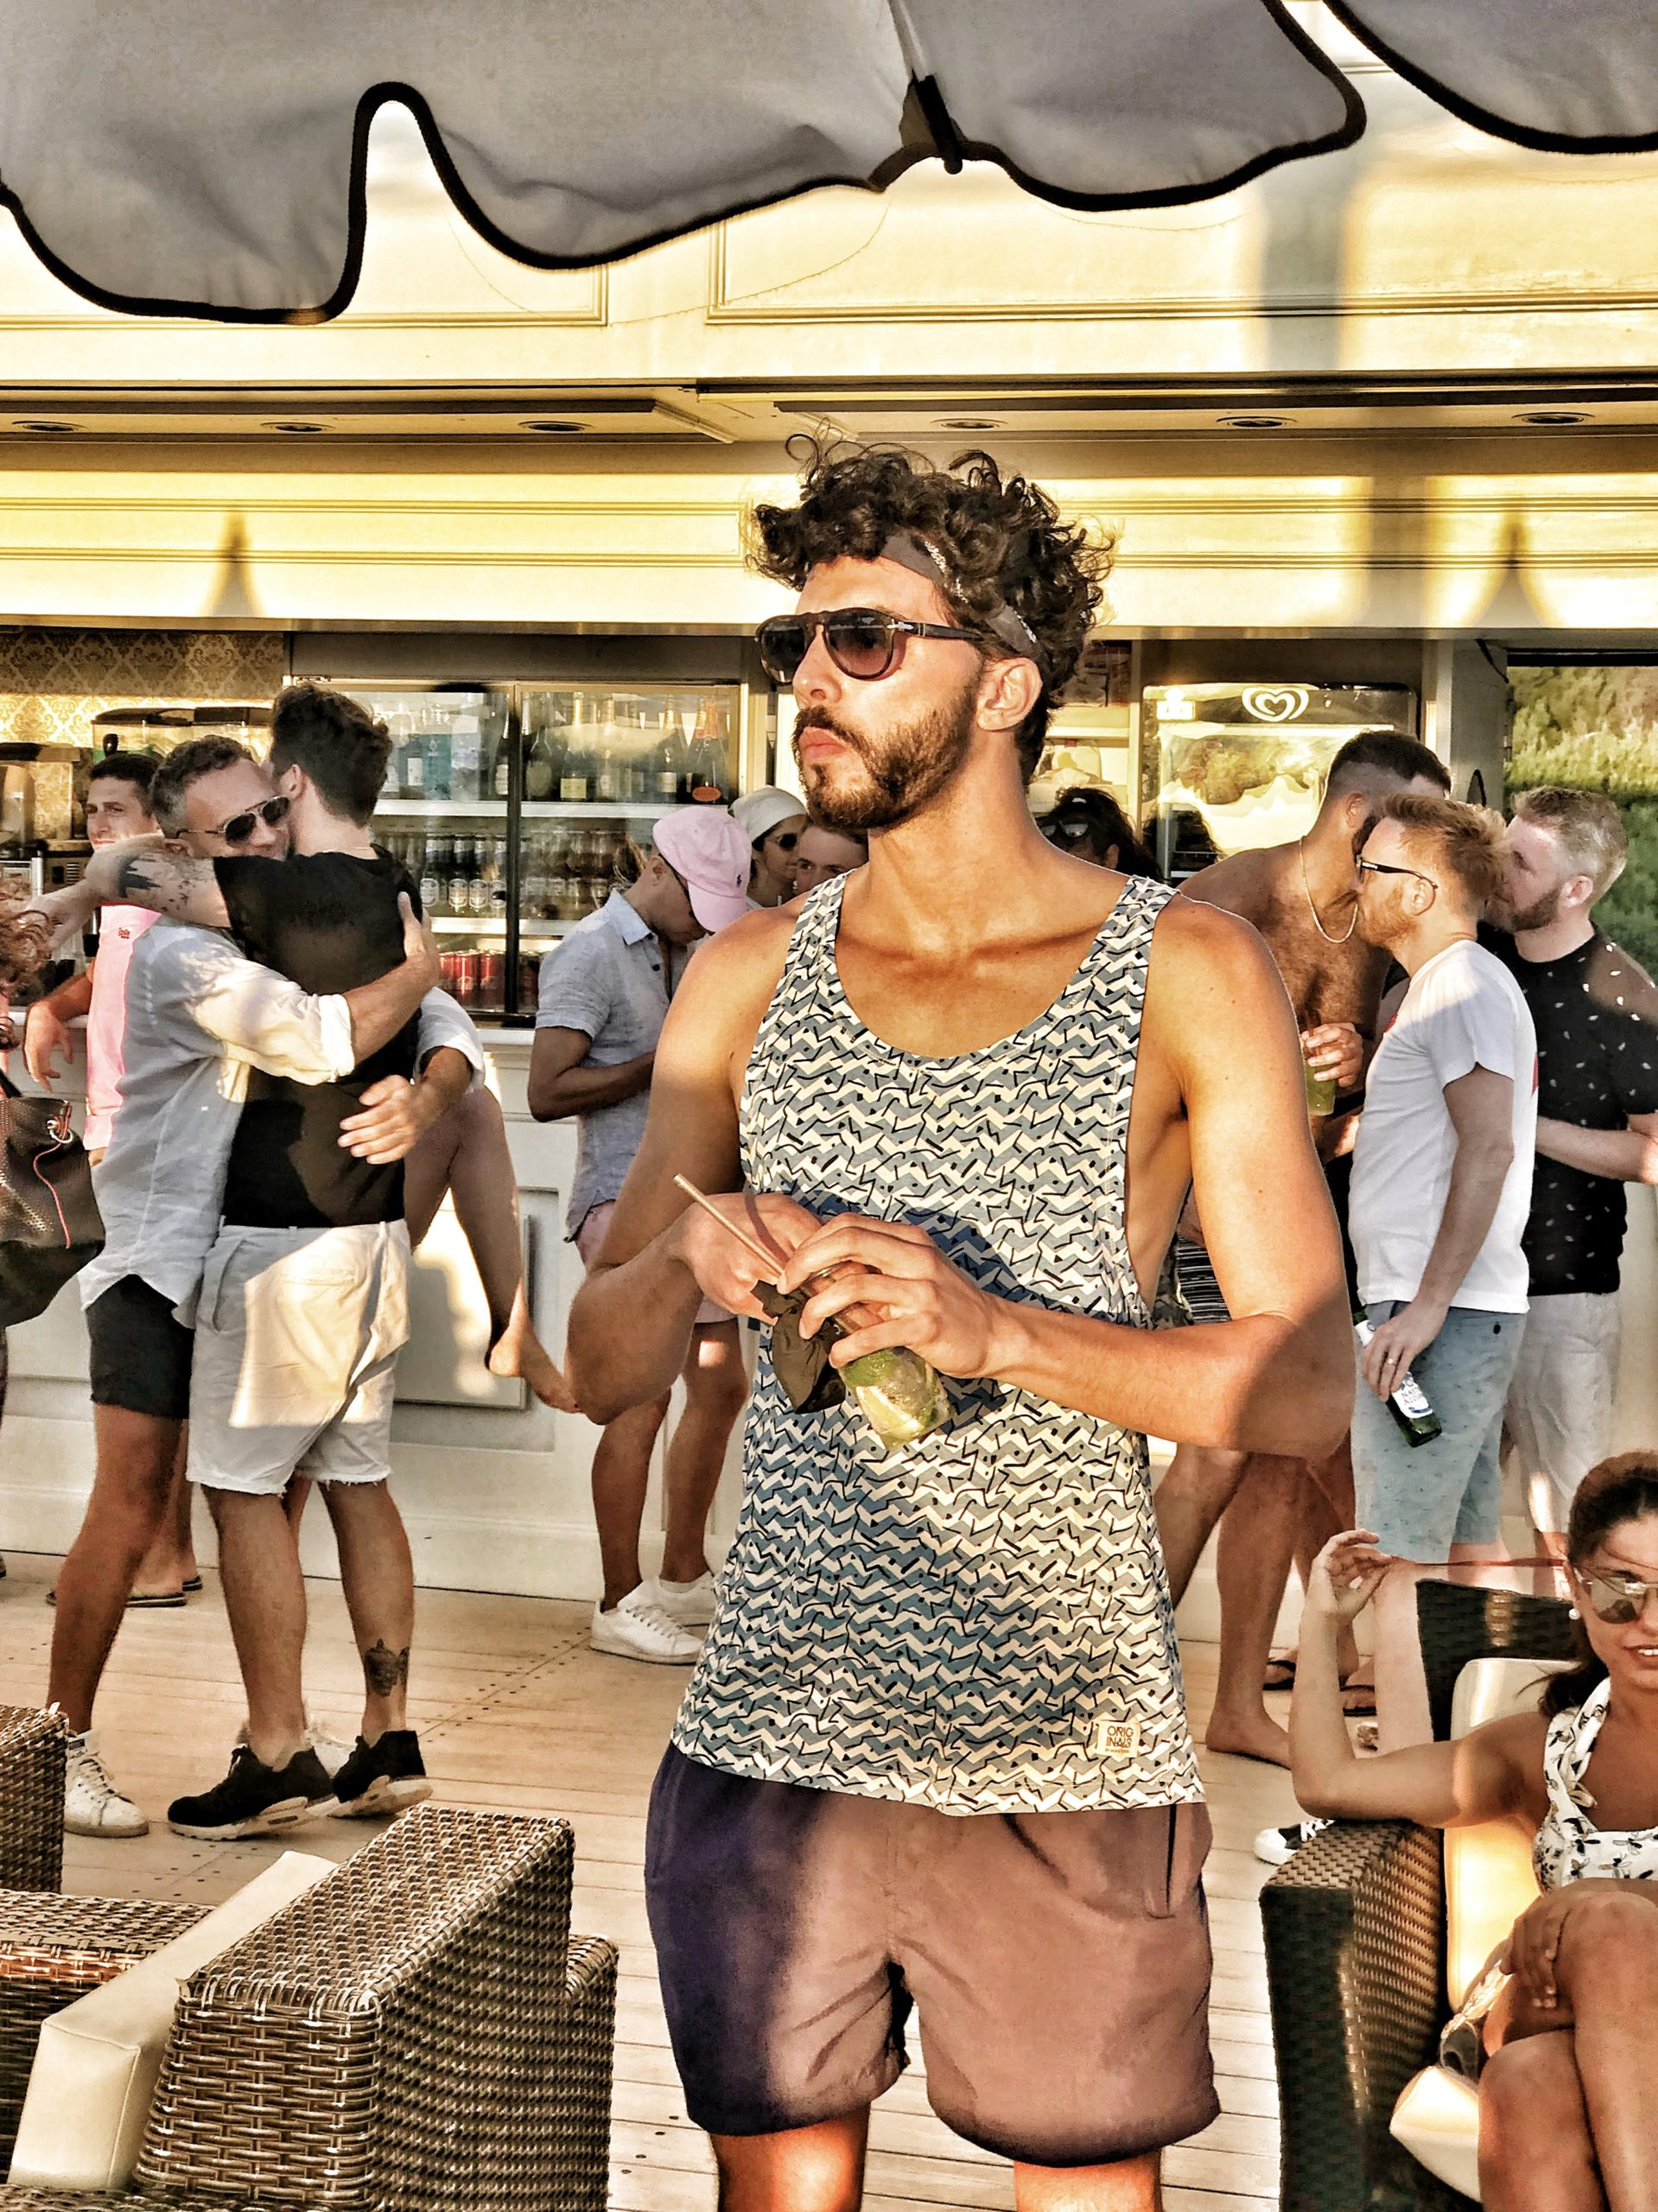 Gallipoli has a hugely popular gay summer scene, drawing a sophisticated international gay crowd. The Big Gay Guide to Puglia brought to you from Puglia is the definitive guide to gay Puglia.